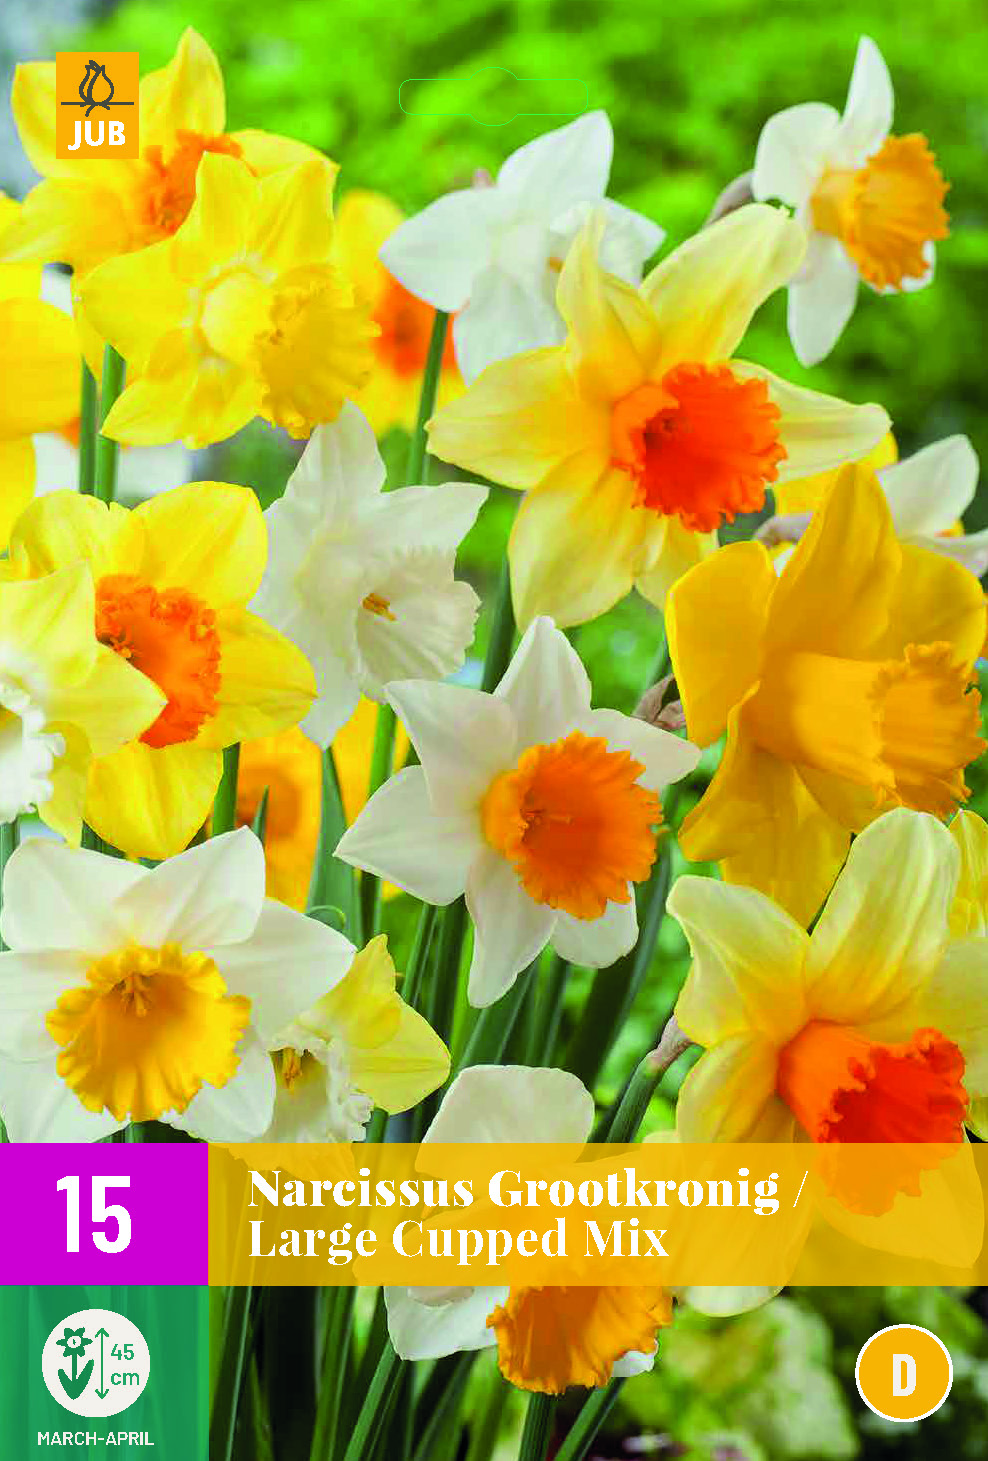 NARCISSI LARGE CUPPED MIX 15